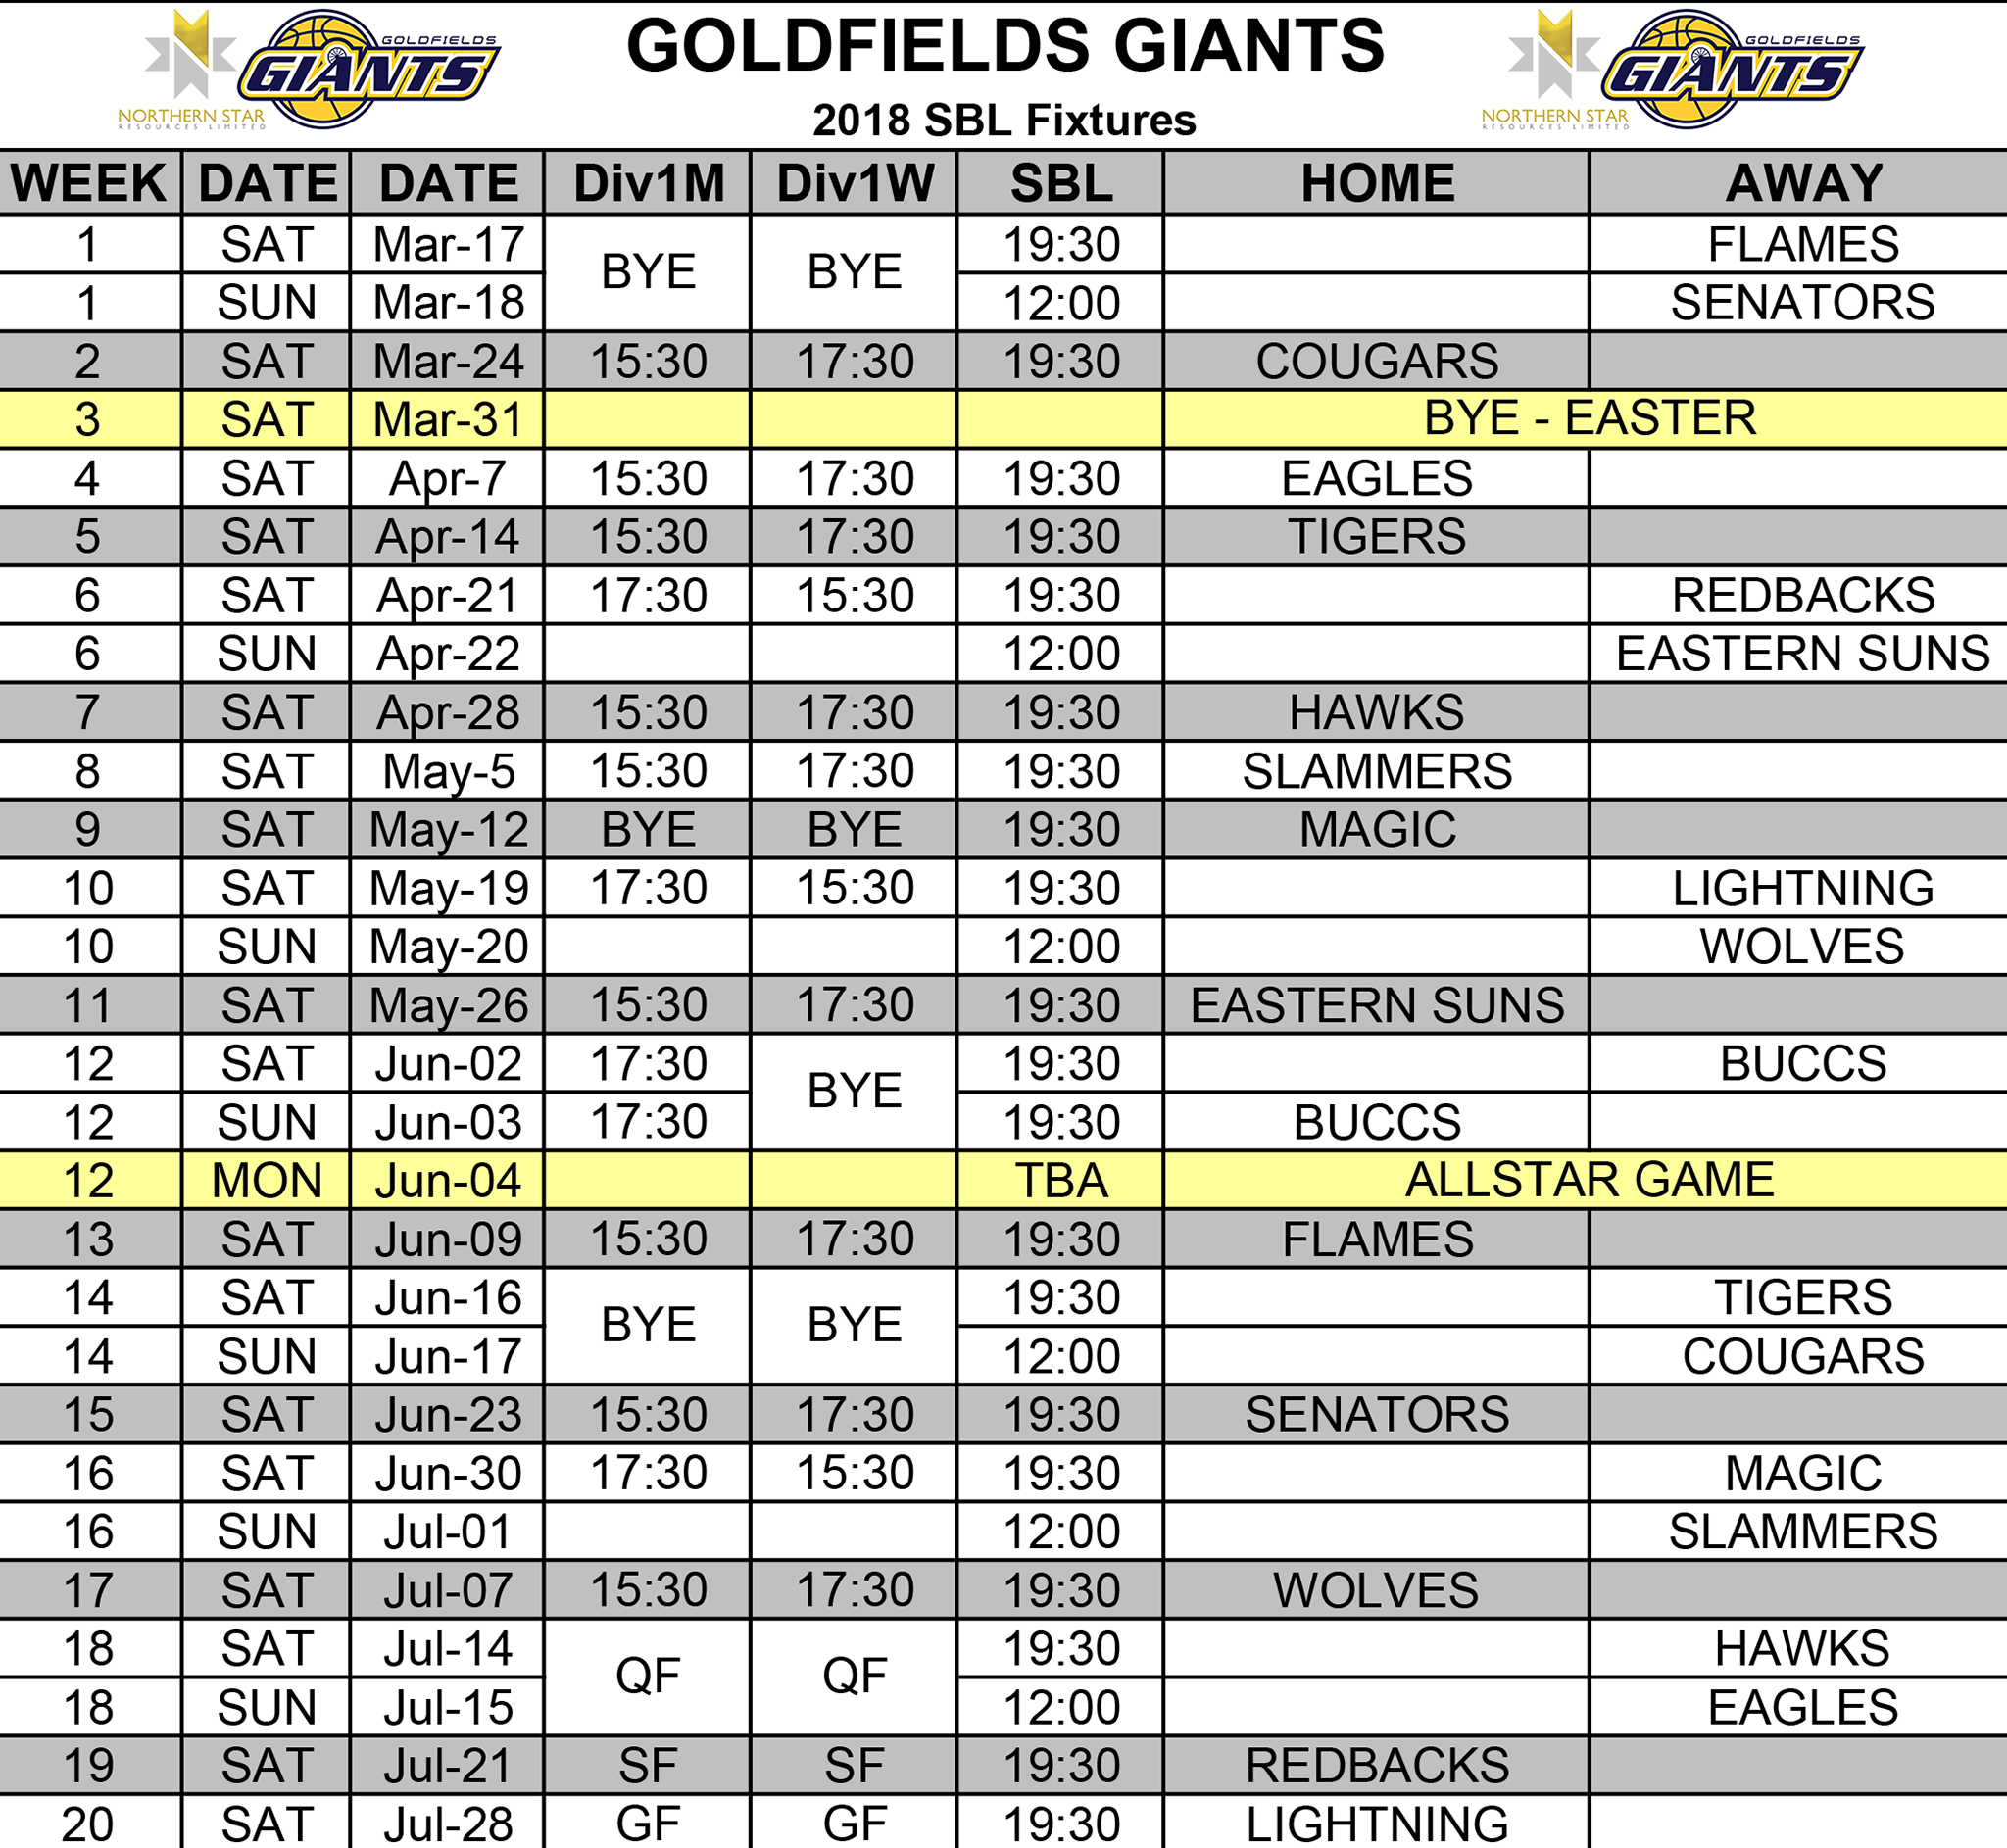 Goldfields Giants 2018 Schedule.